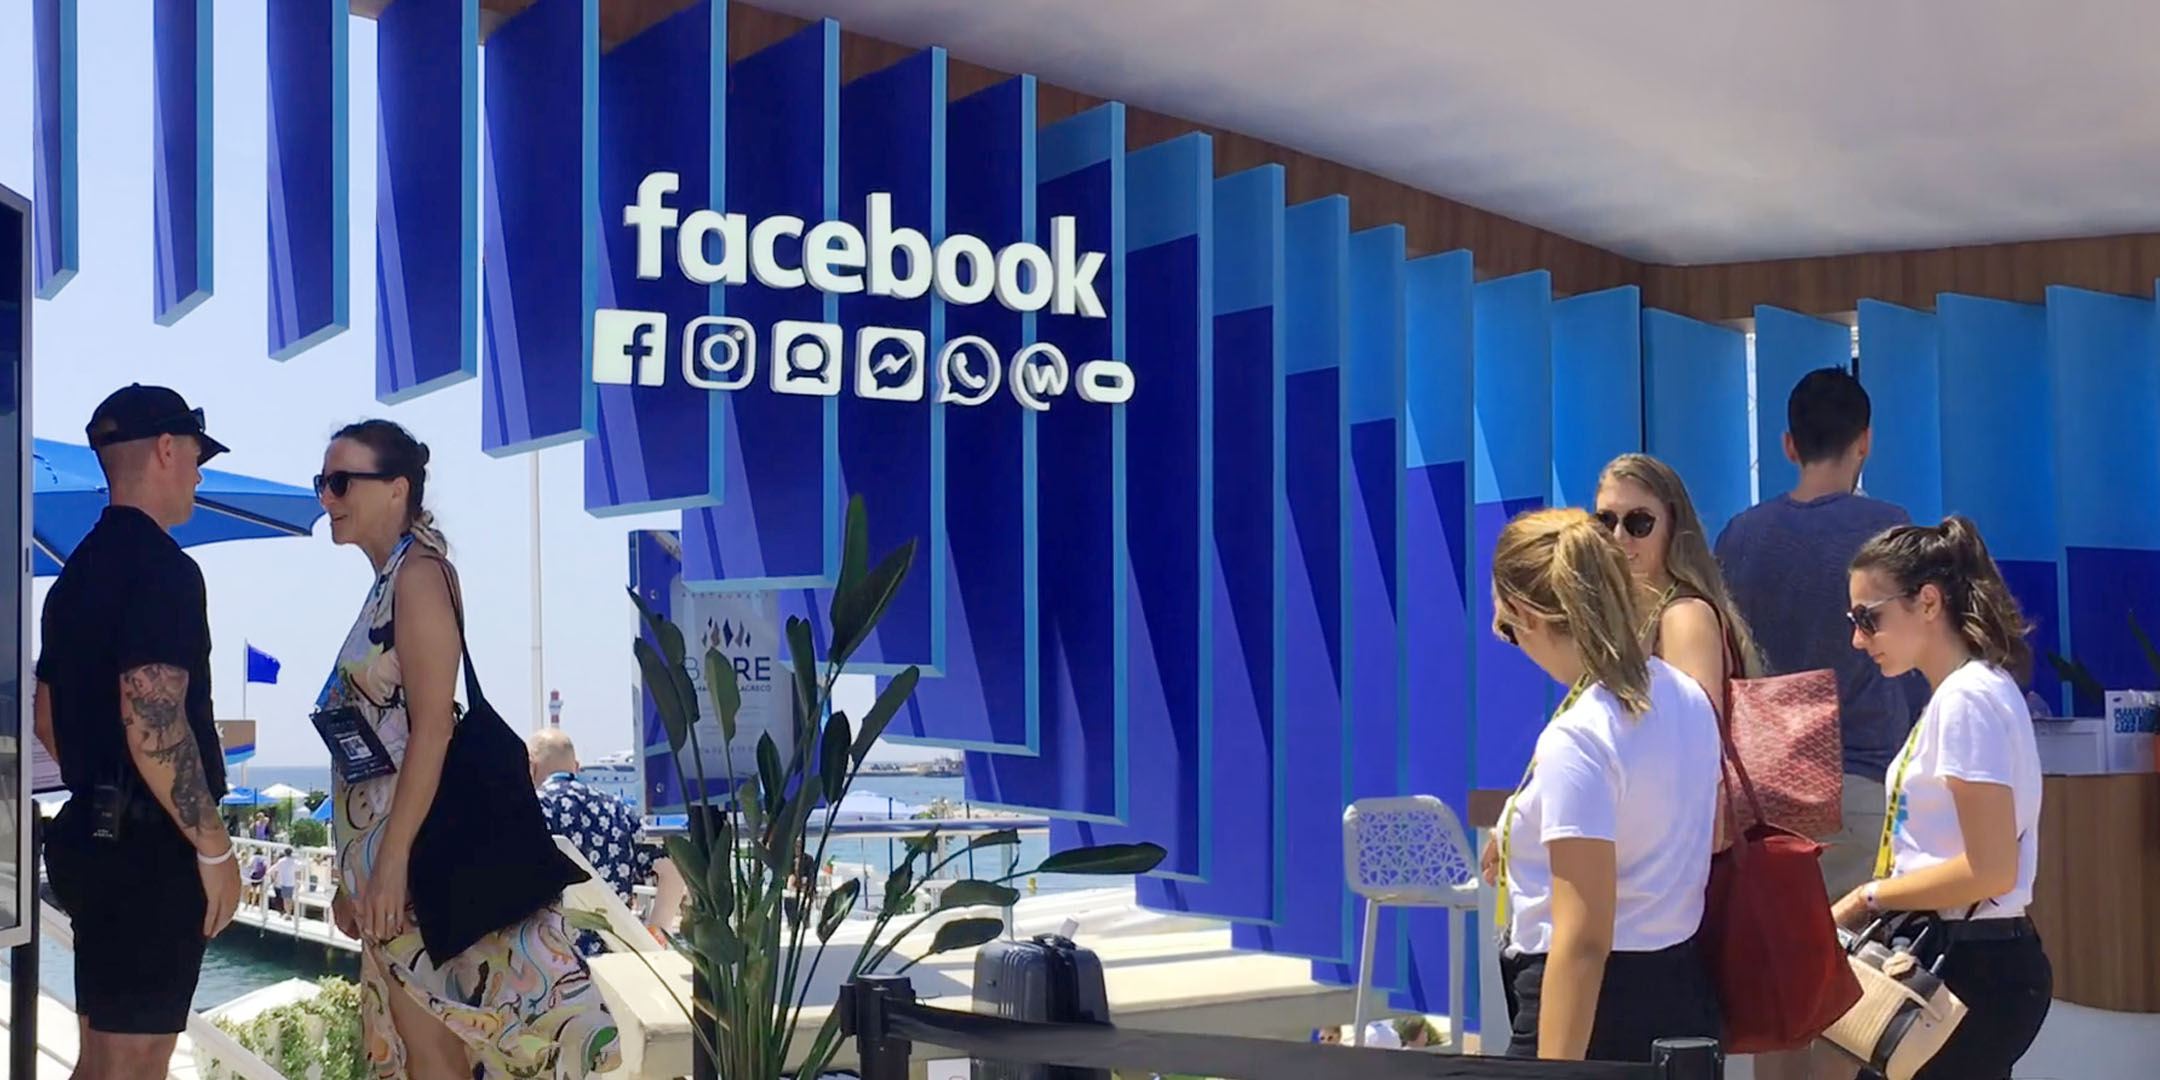 facebook - How can the idea of a global community manifest in a physical space, while also promoting tools for creativity?